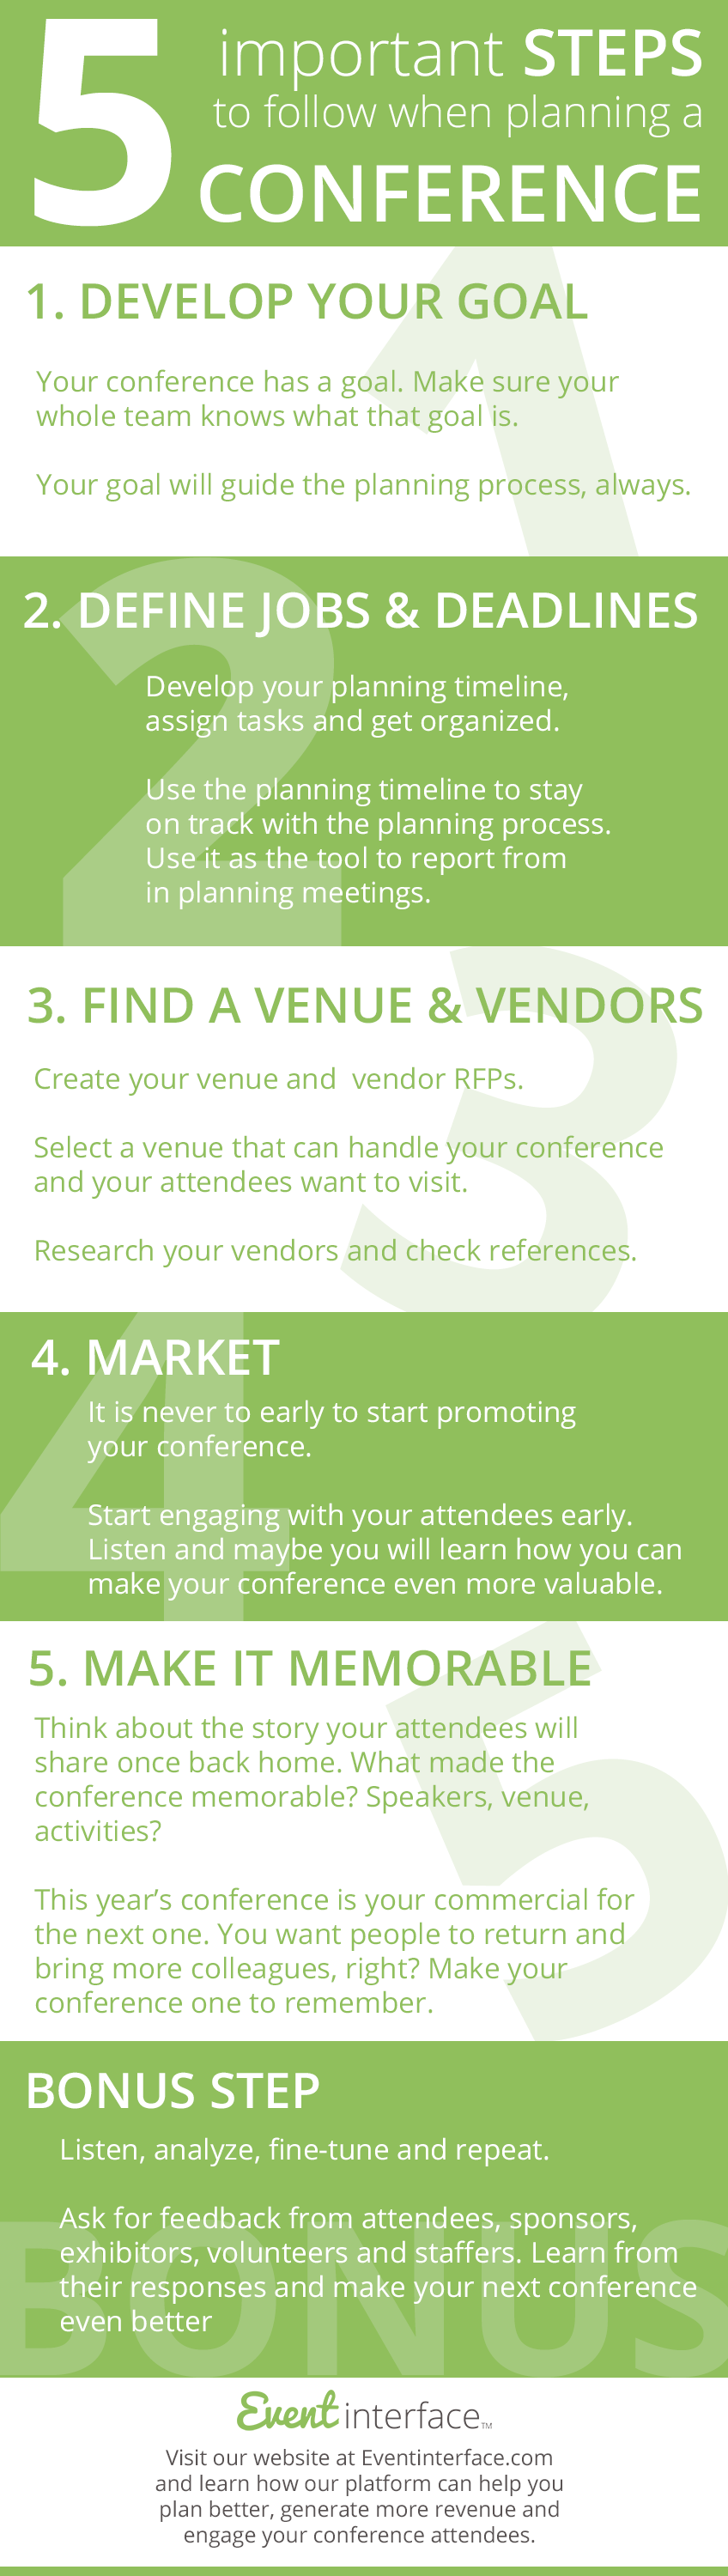 5 Important Steps To Follow When Planning a Conference an Eventinterface infographic for Meeting Planners